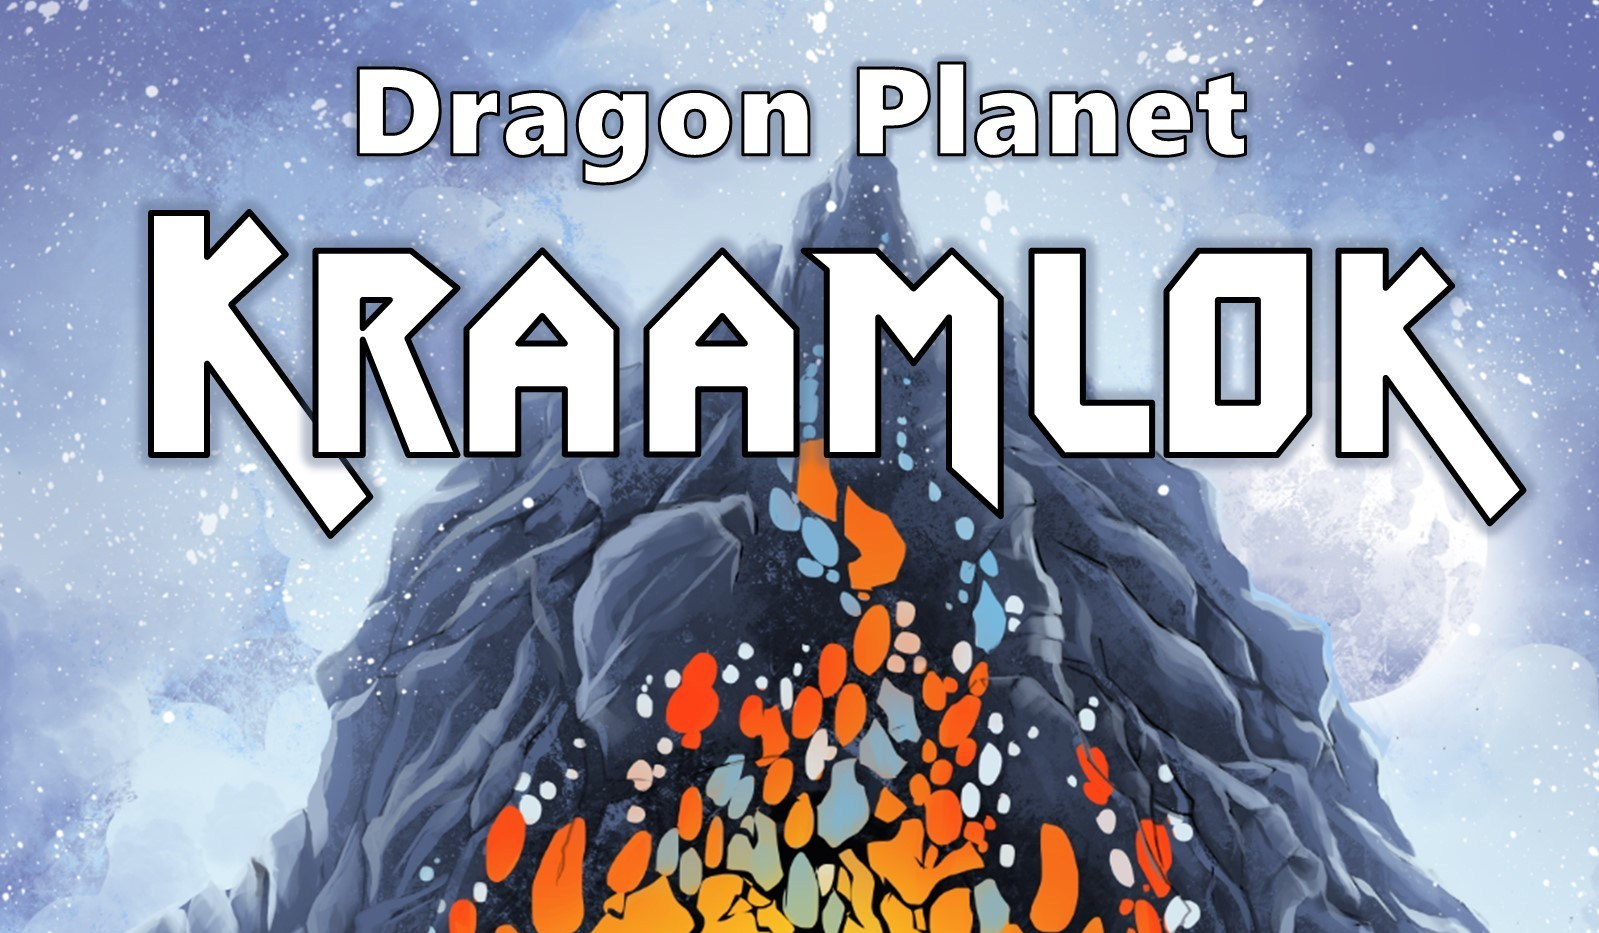 Book Review: Dragon Planet: Kraamlok